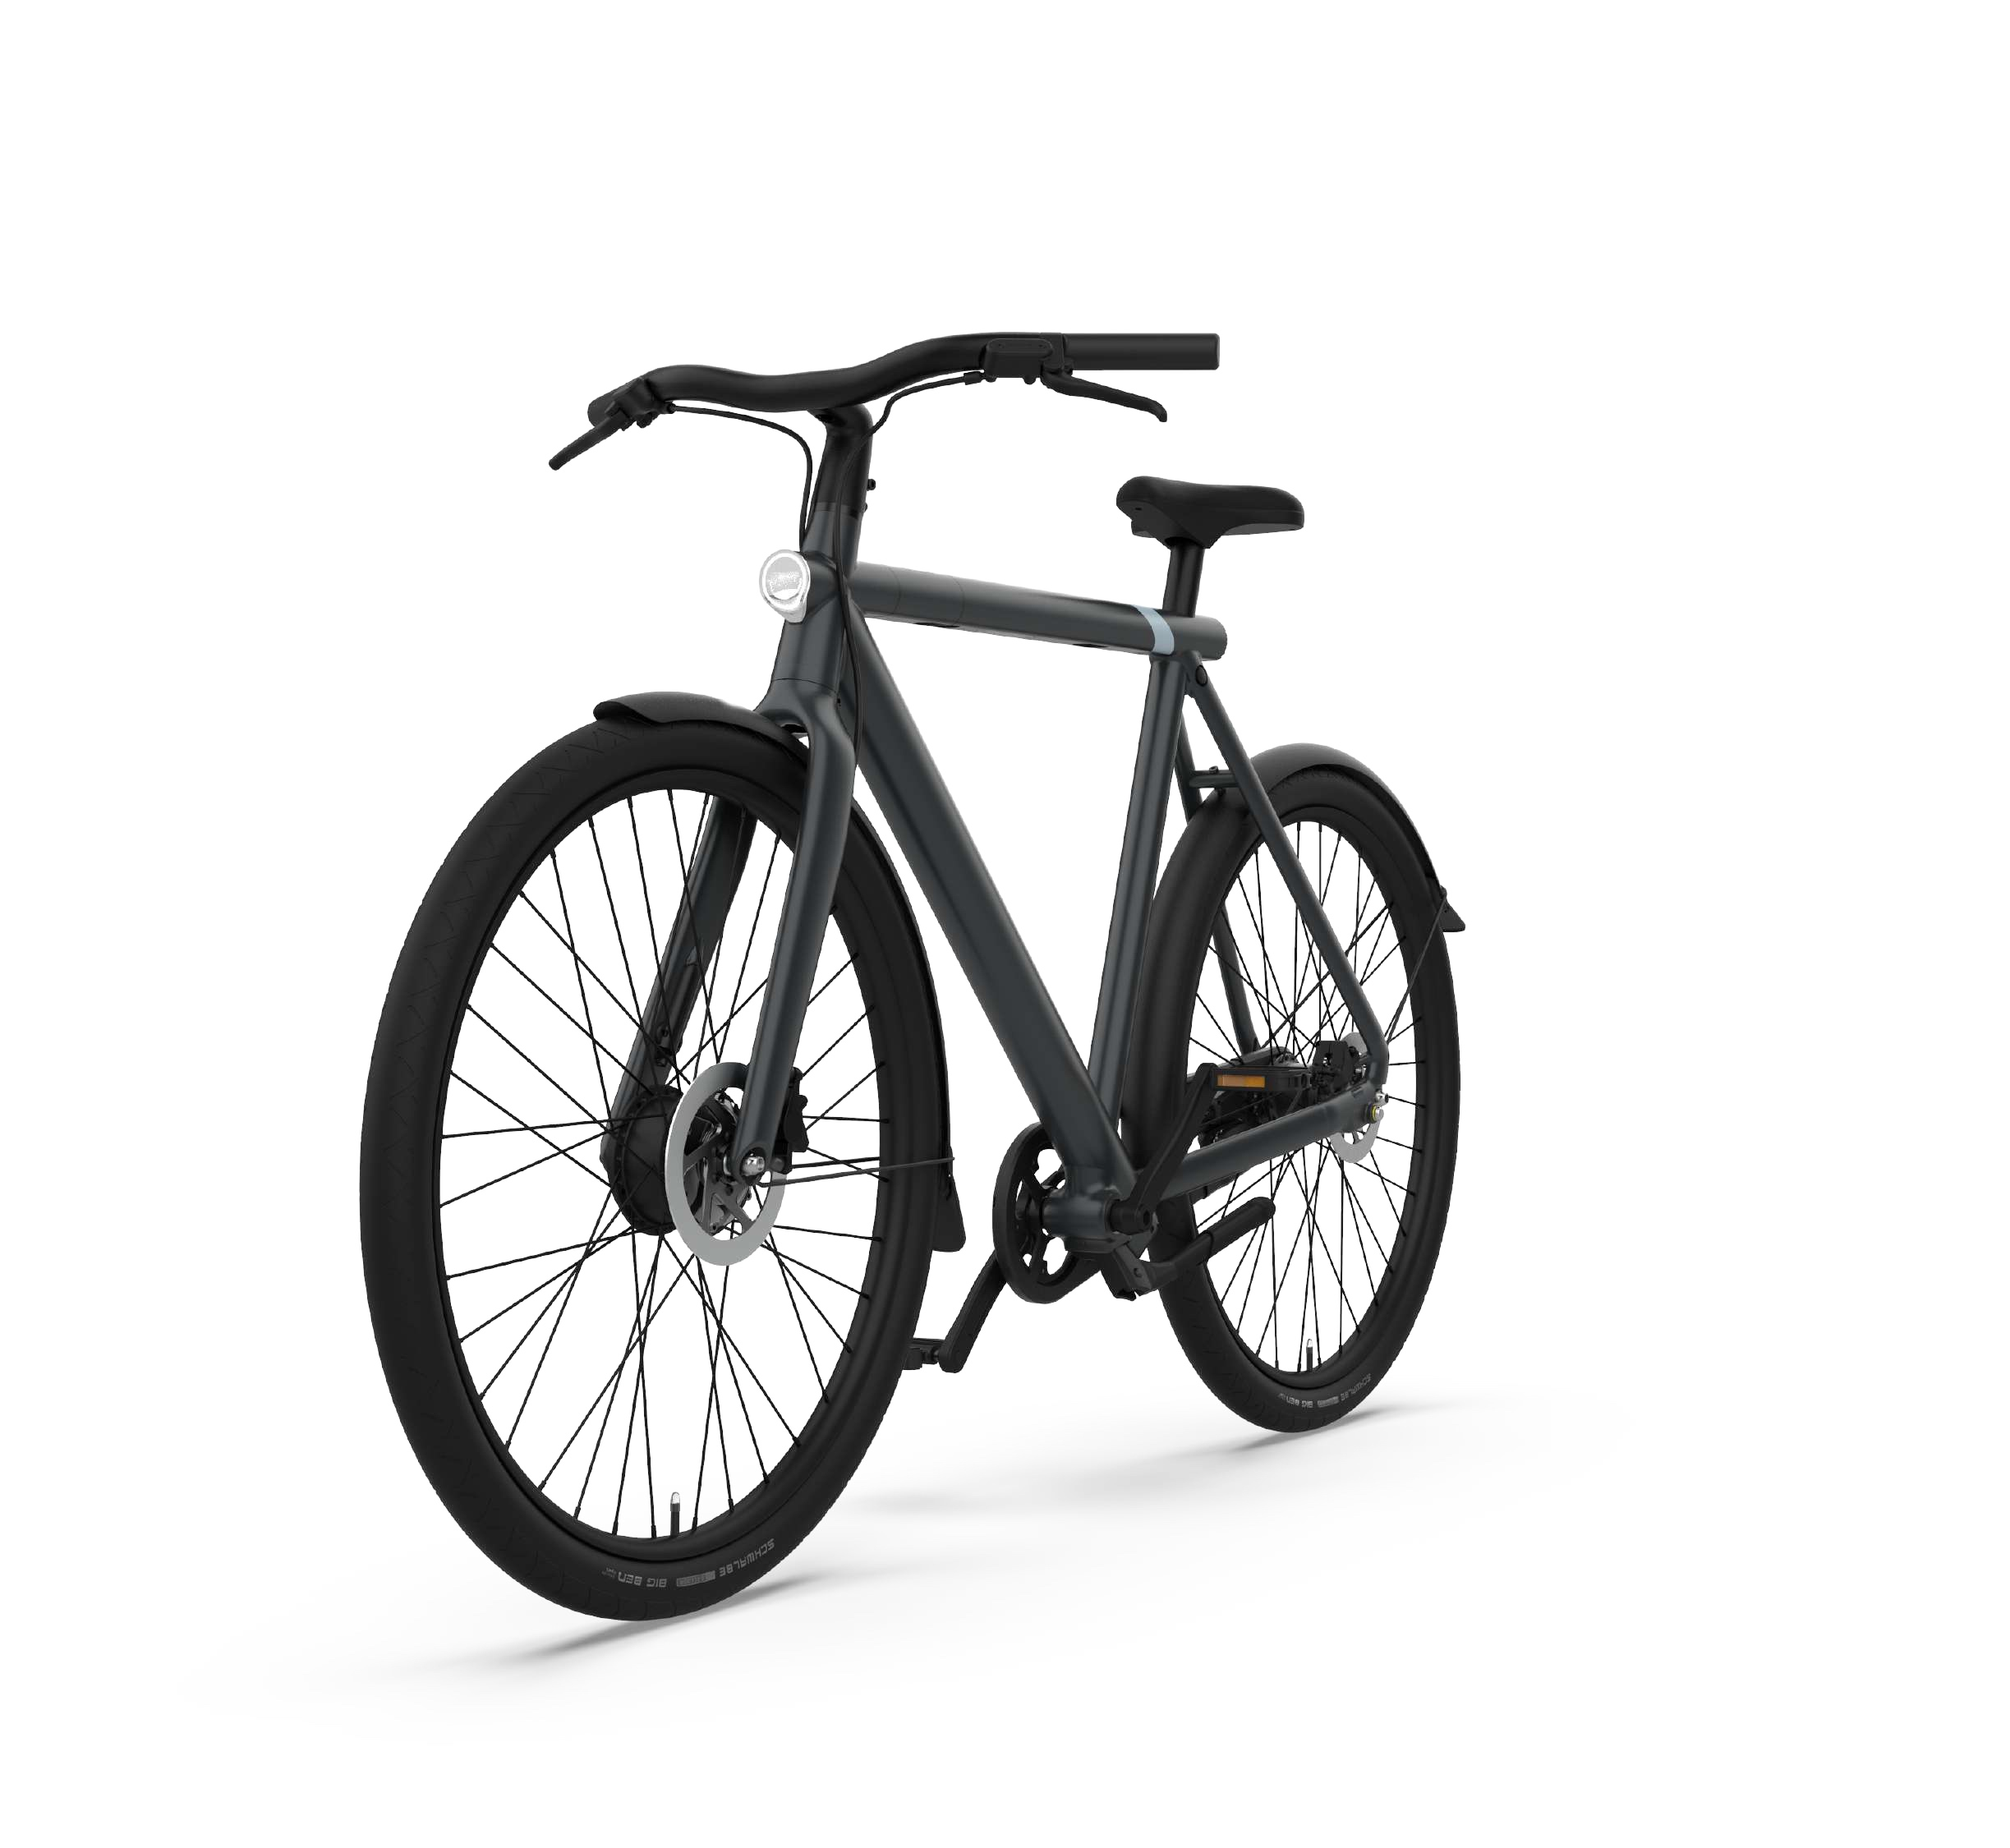 Vanmoof Introduces New S3 And X3 Electric Bikes Internet